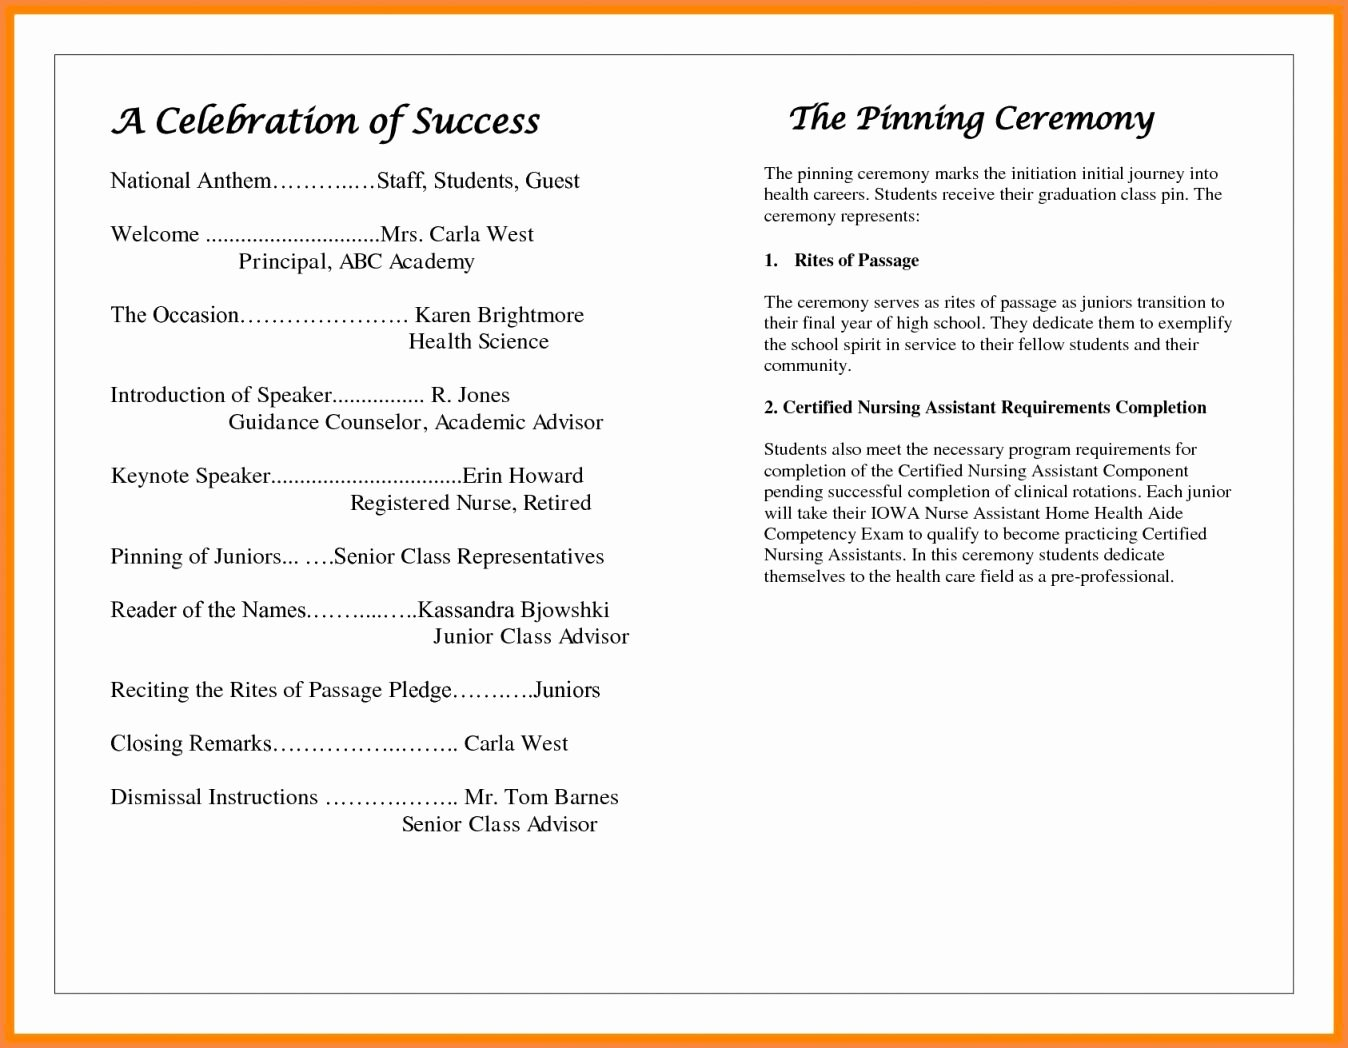 Excellent Awards Ceremony Program Sample Kd20